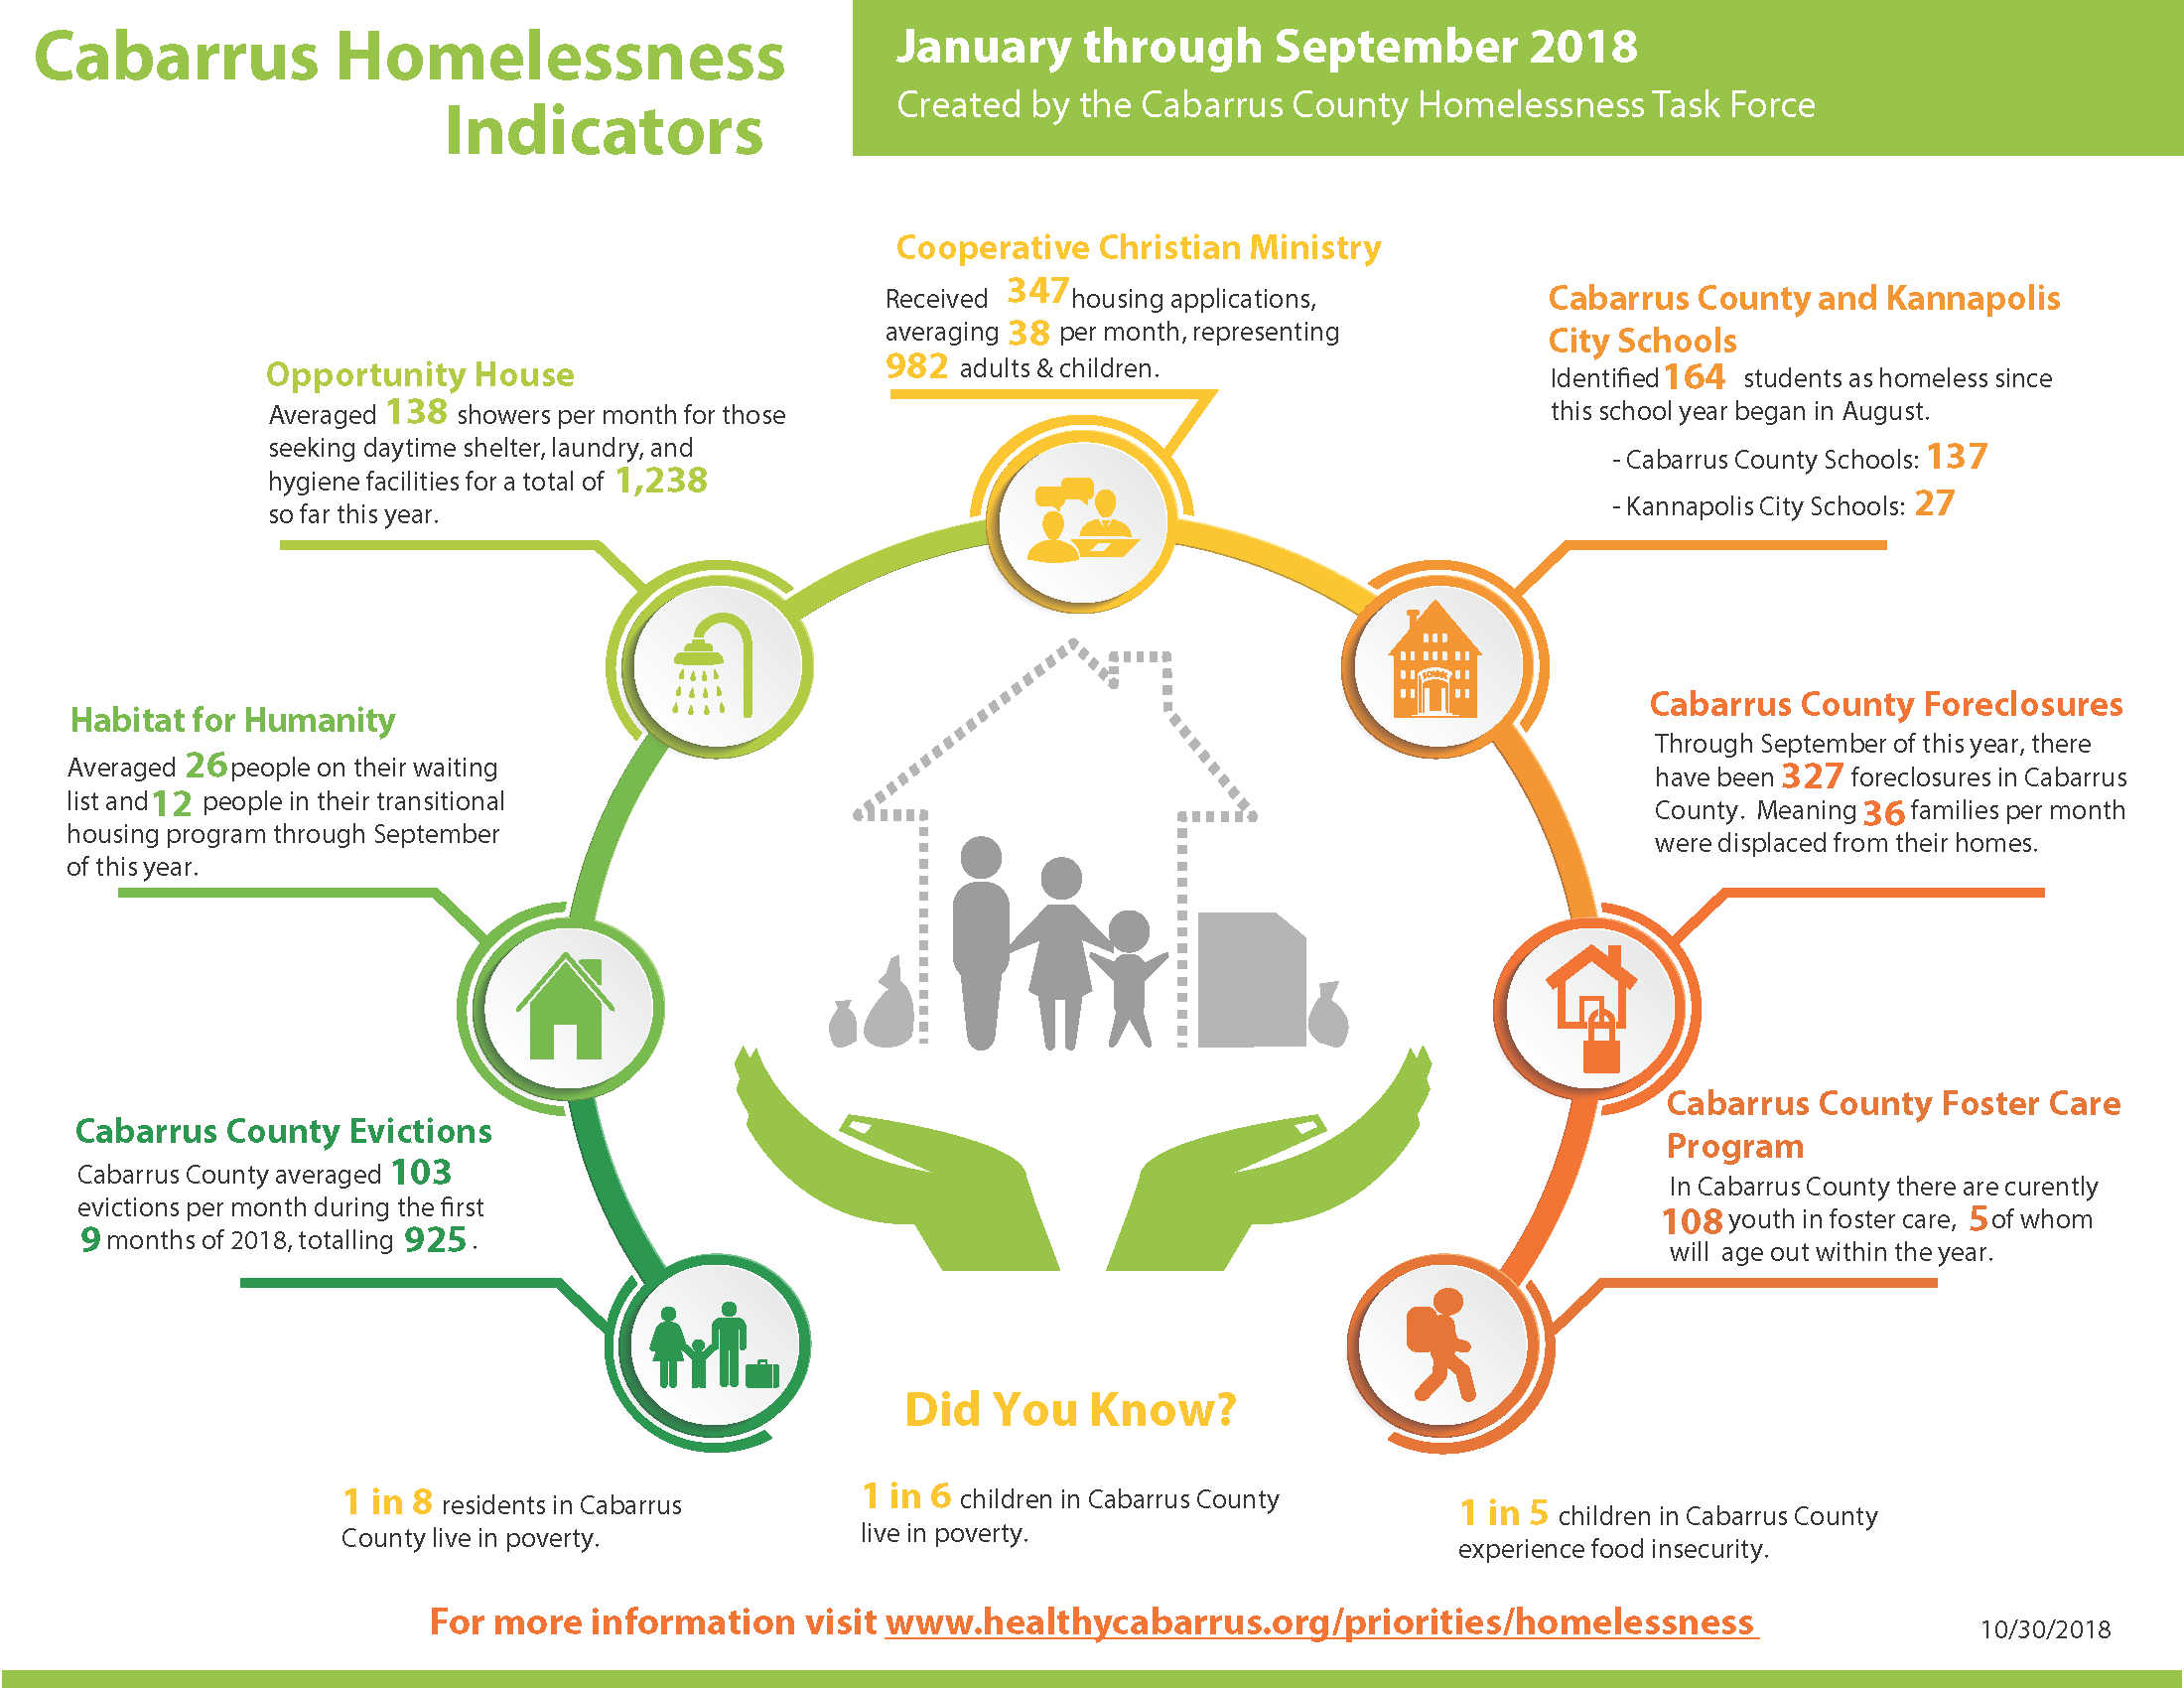 Sept 2018 Homelessness Indicators Dashboard